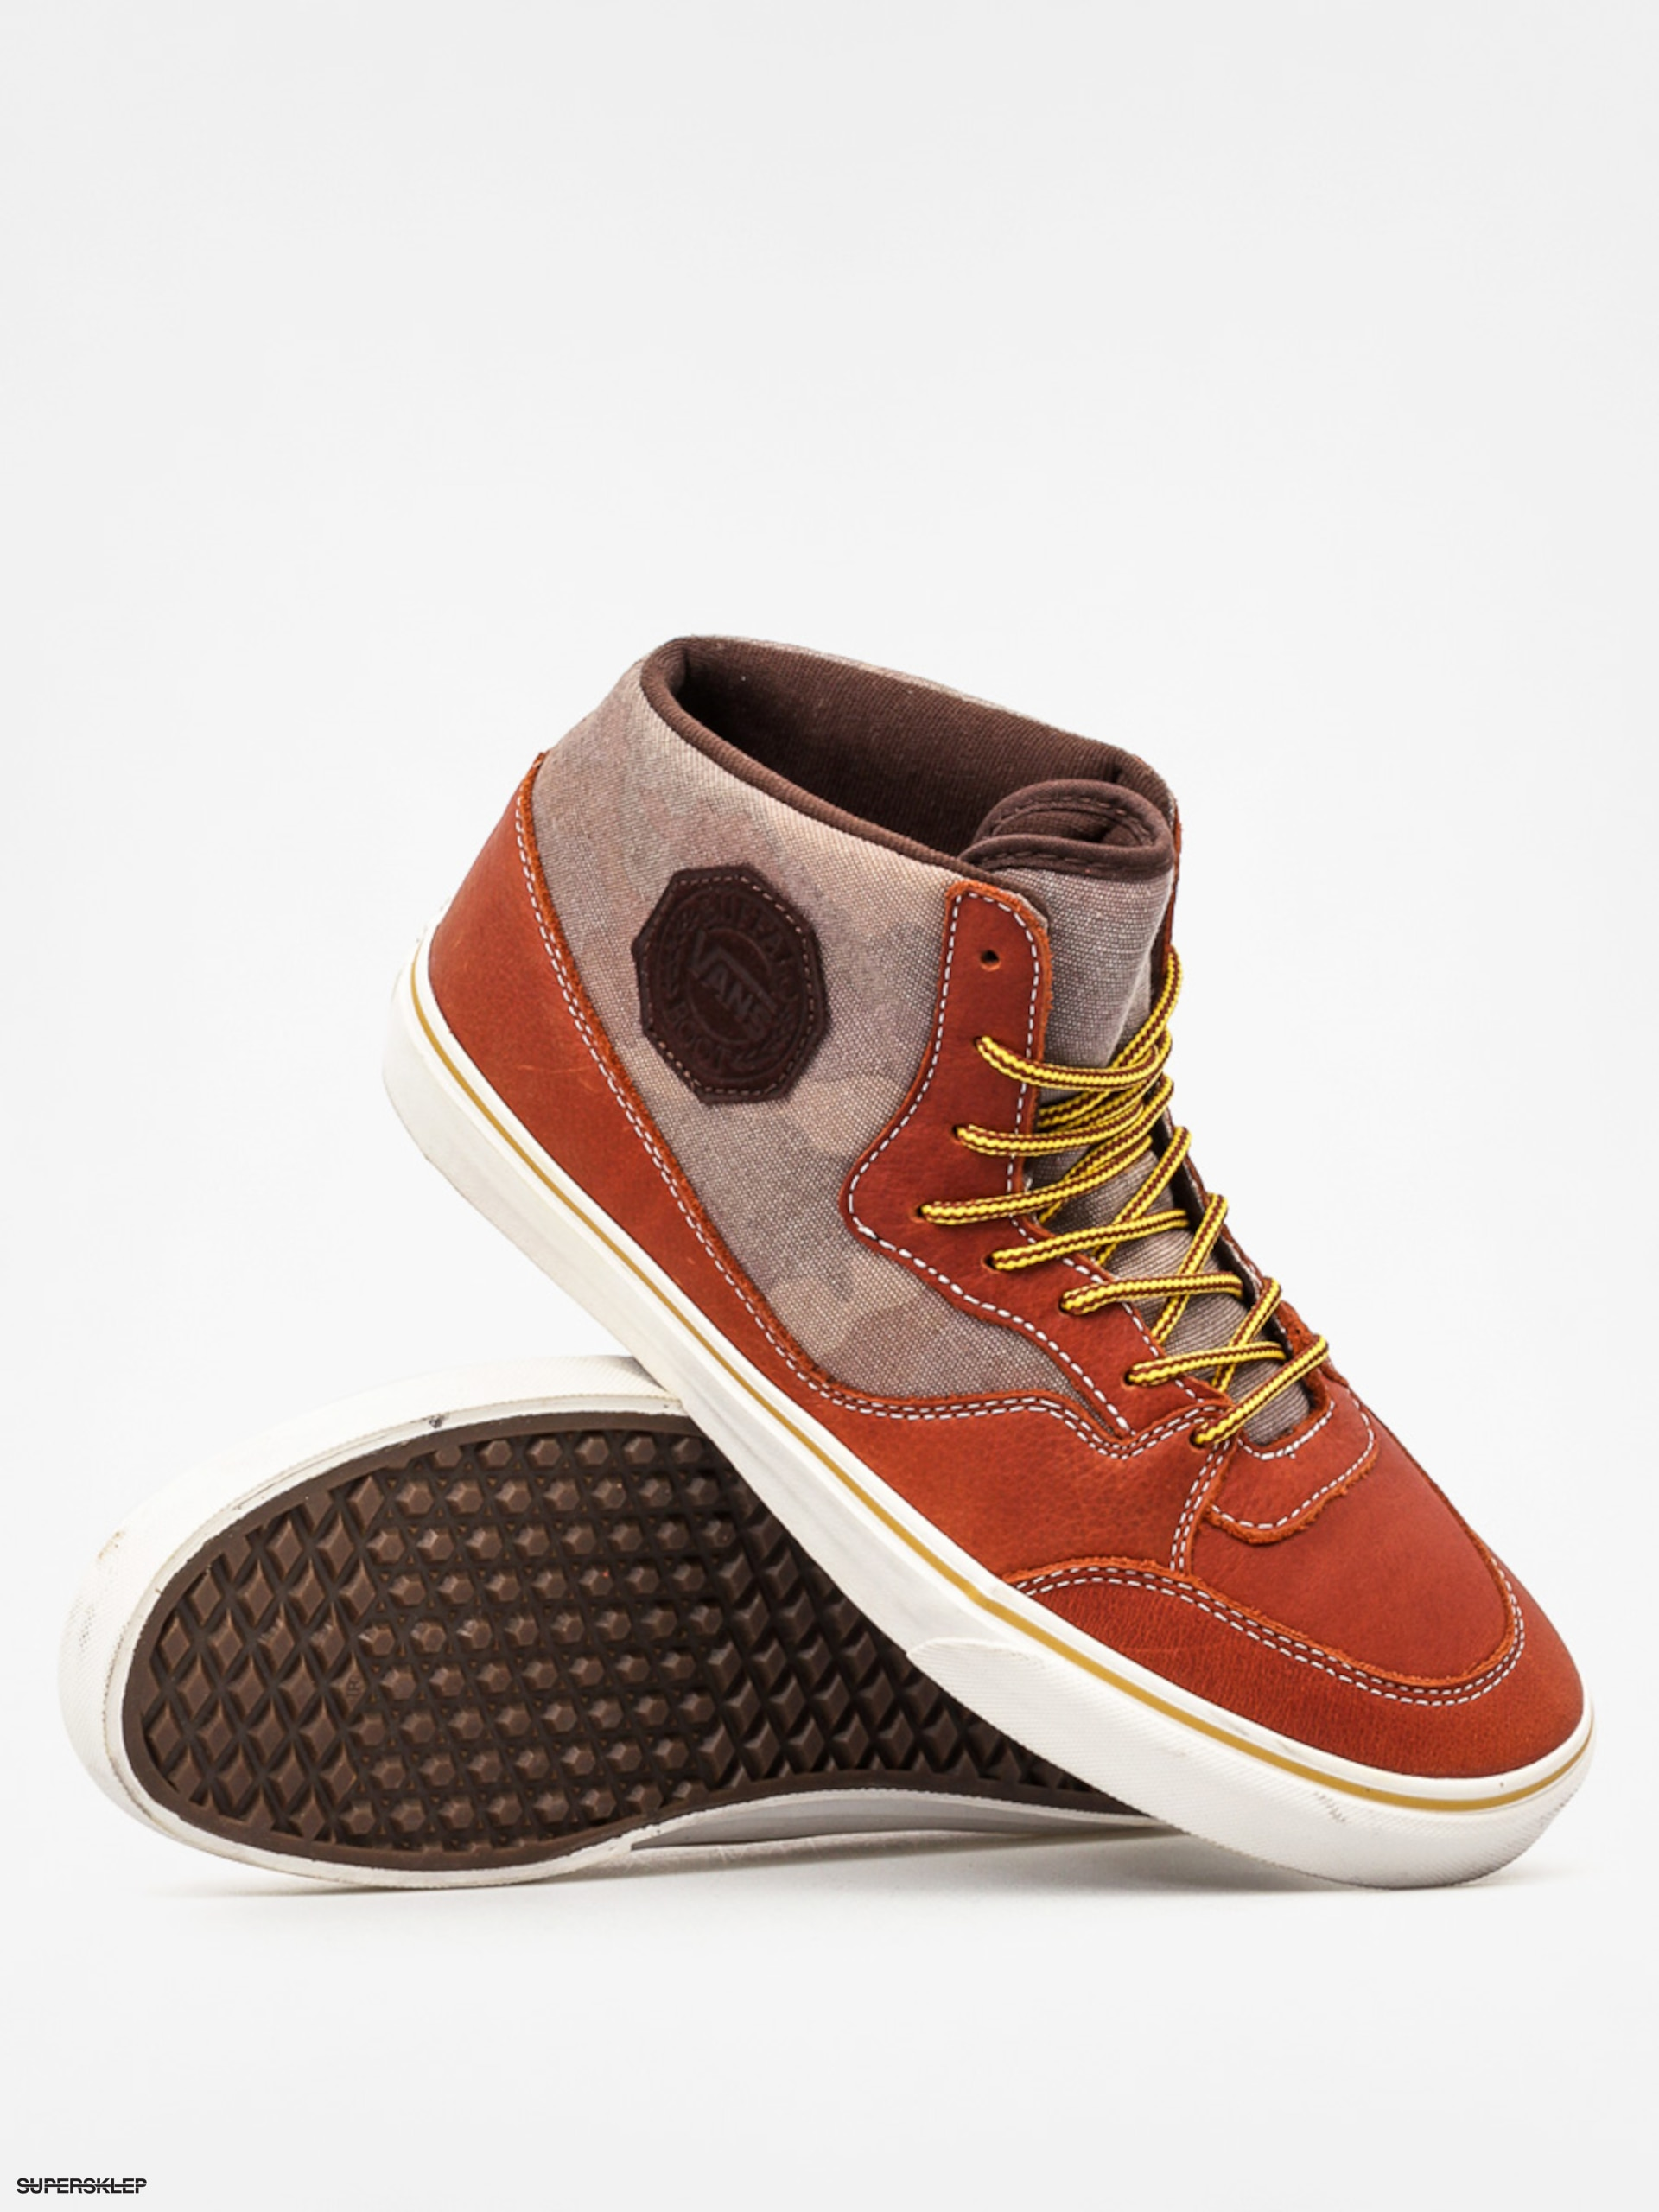 9f4b4a20c5 Topánky Vans Buffalo Boot California (leather henna camo)